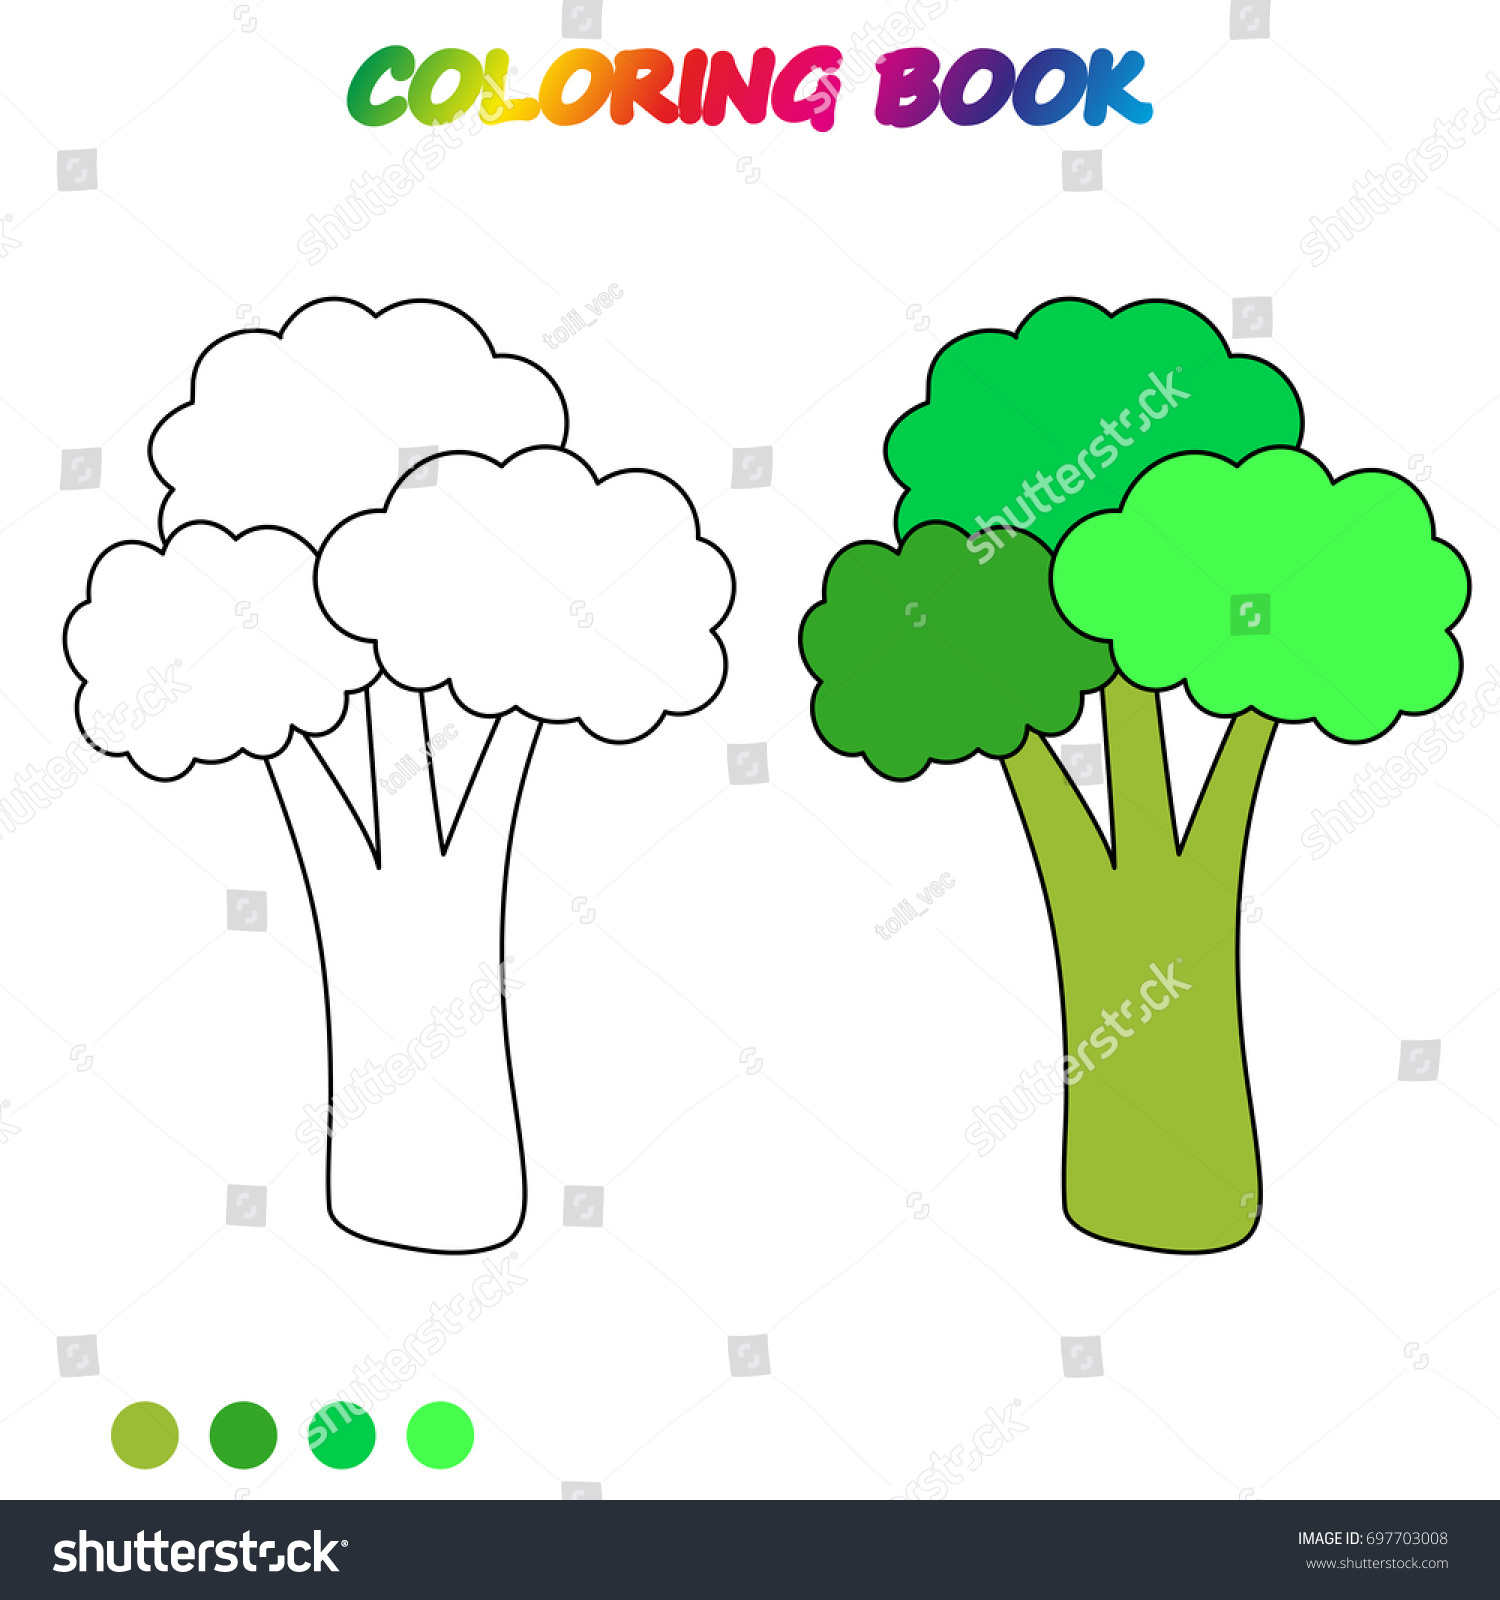 Broccoli Coloring Book Coloring Page Educate Stock Vector (Royalty ...